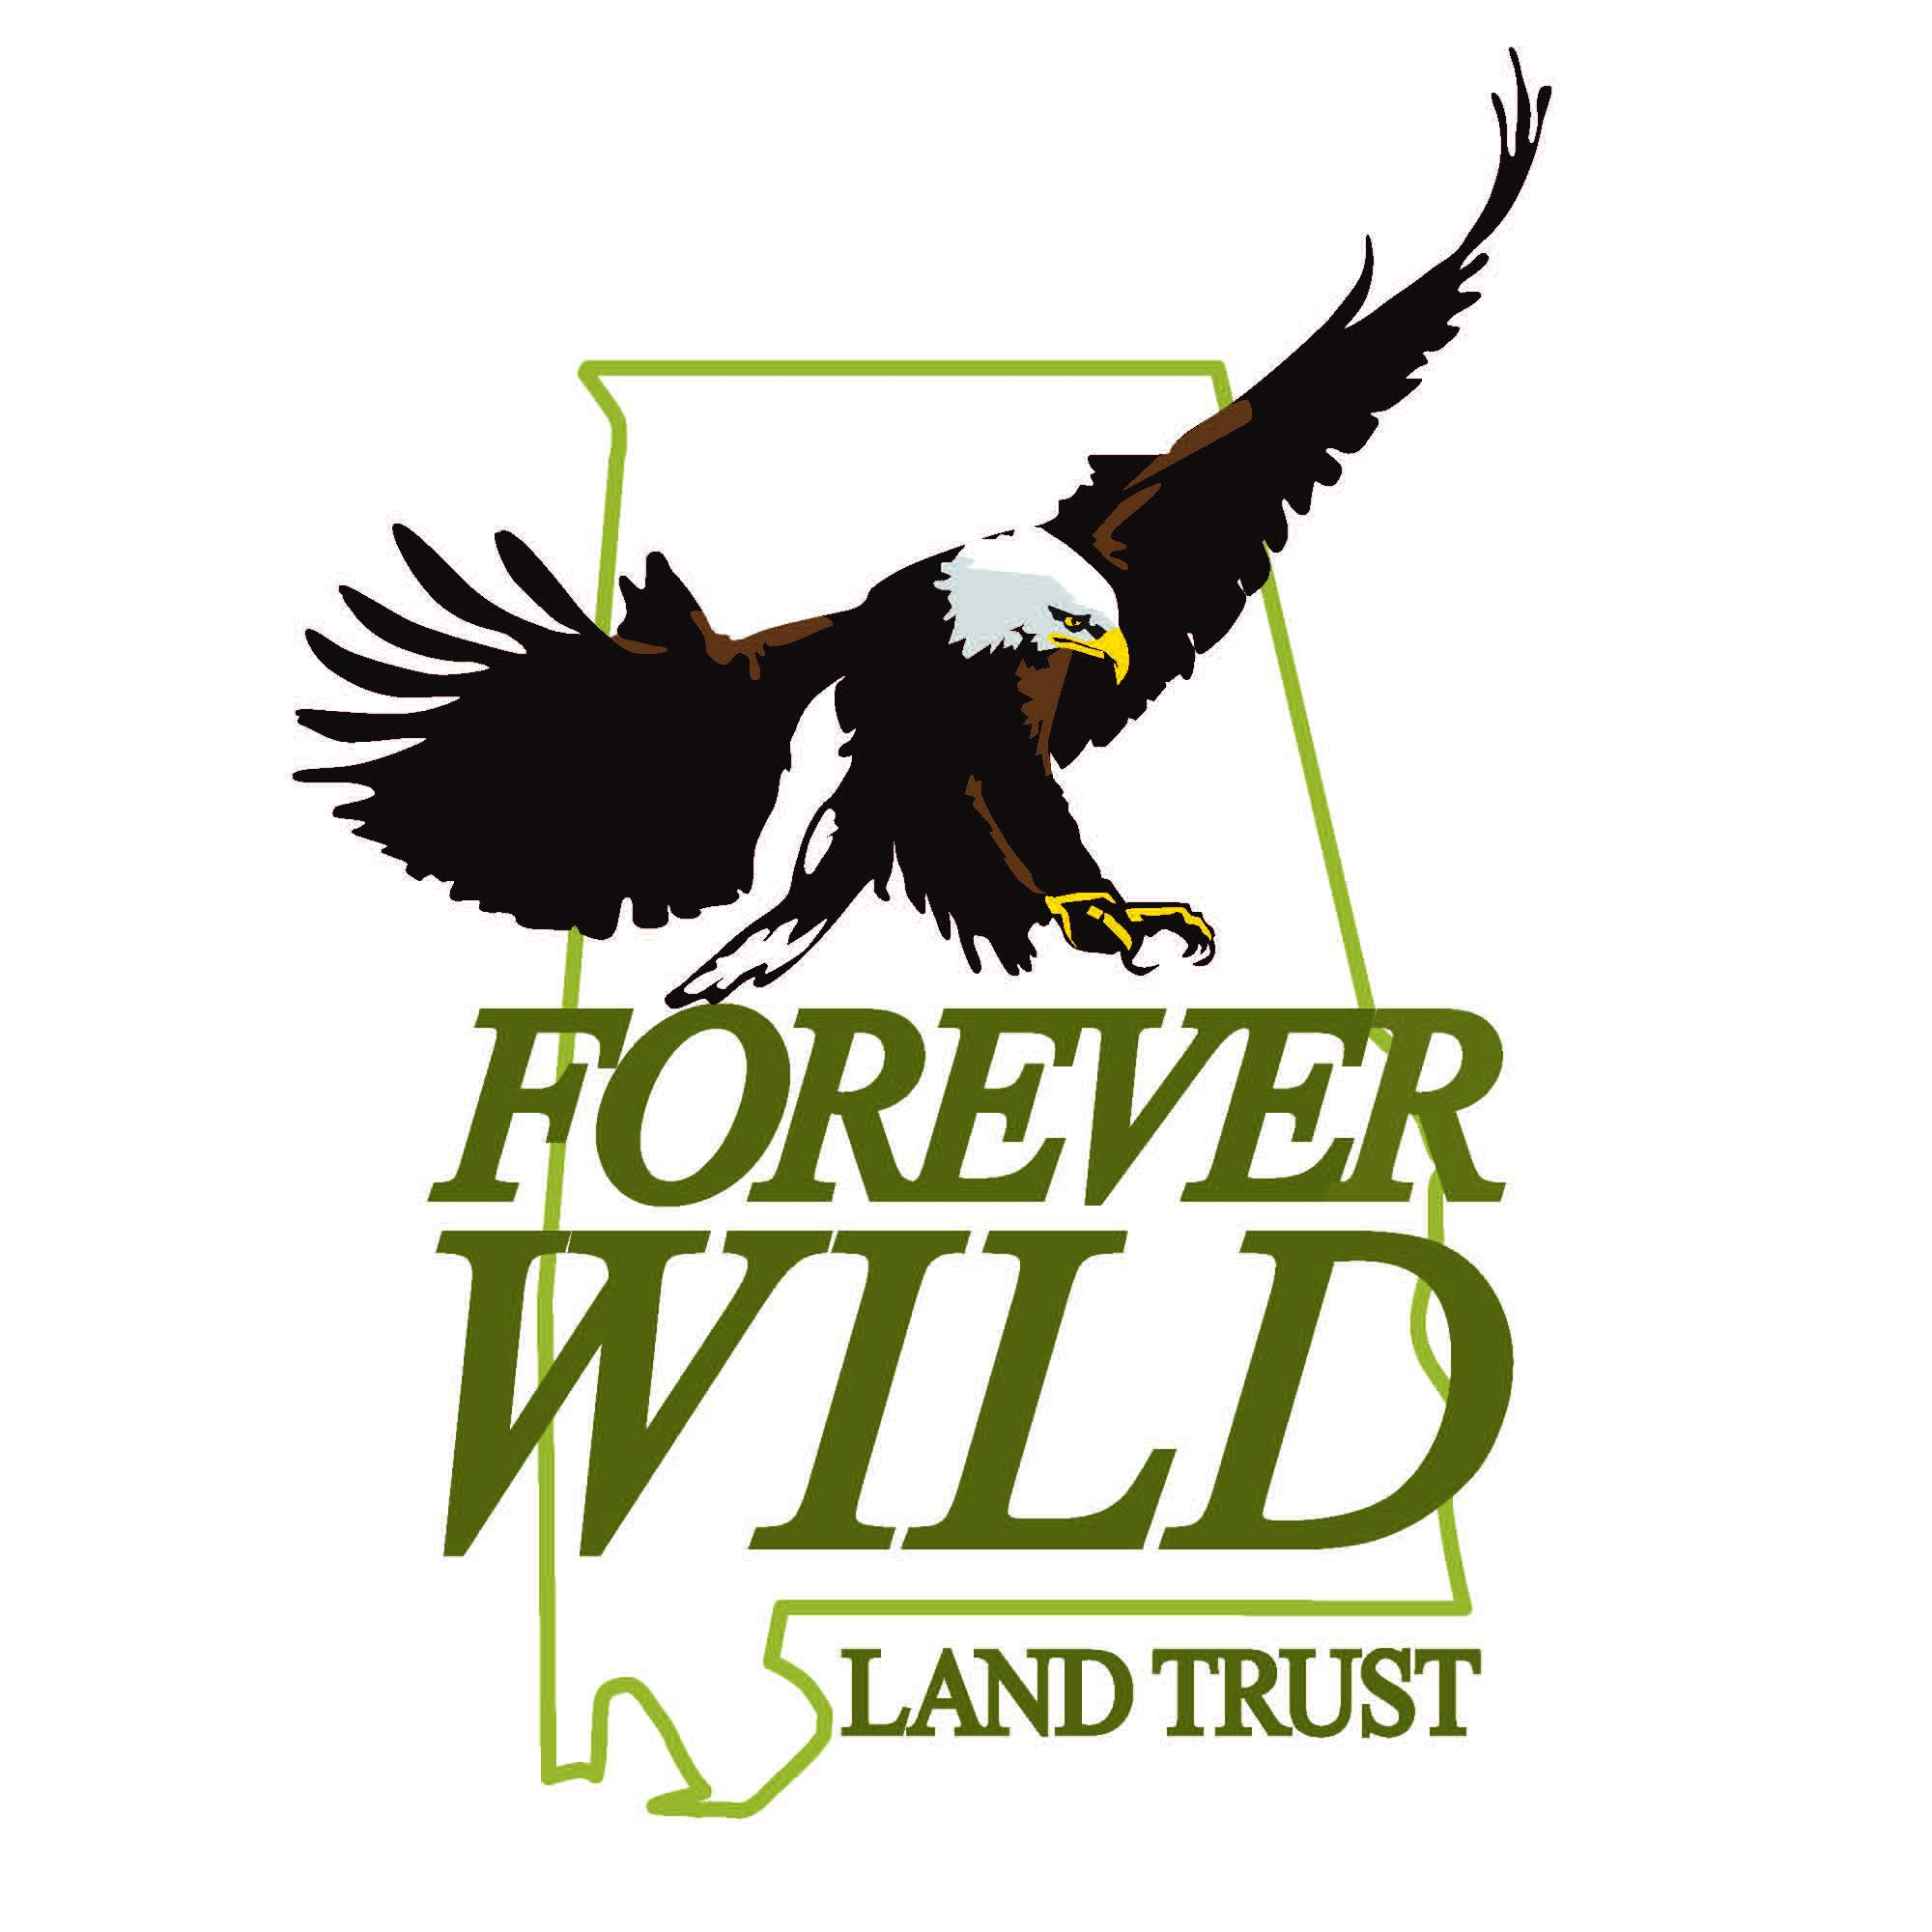 Forever Wild Board Meets in Montgomery on February 7